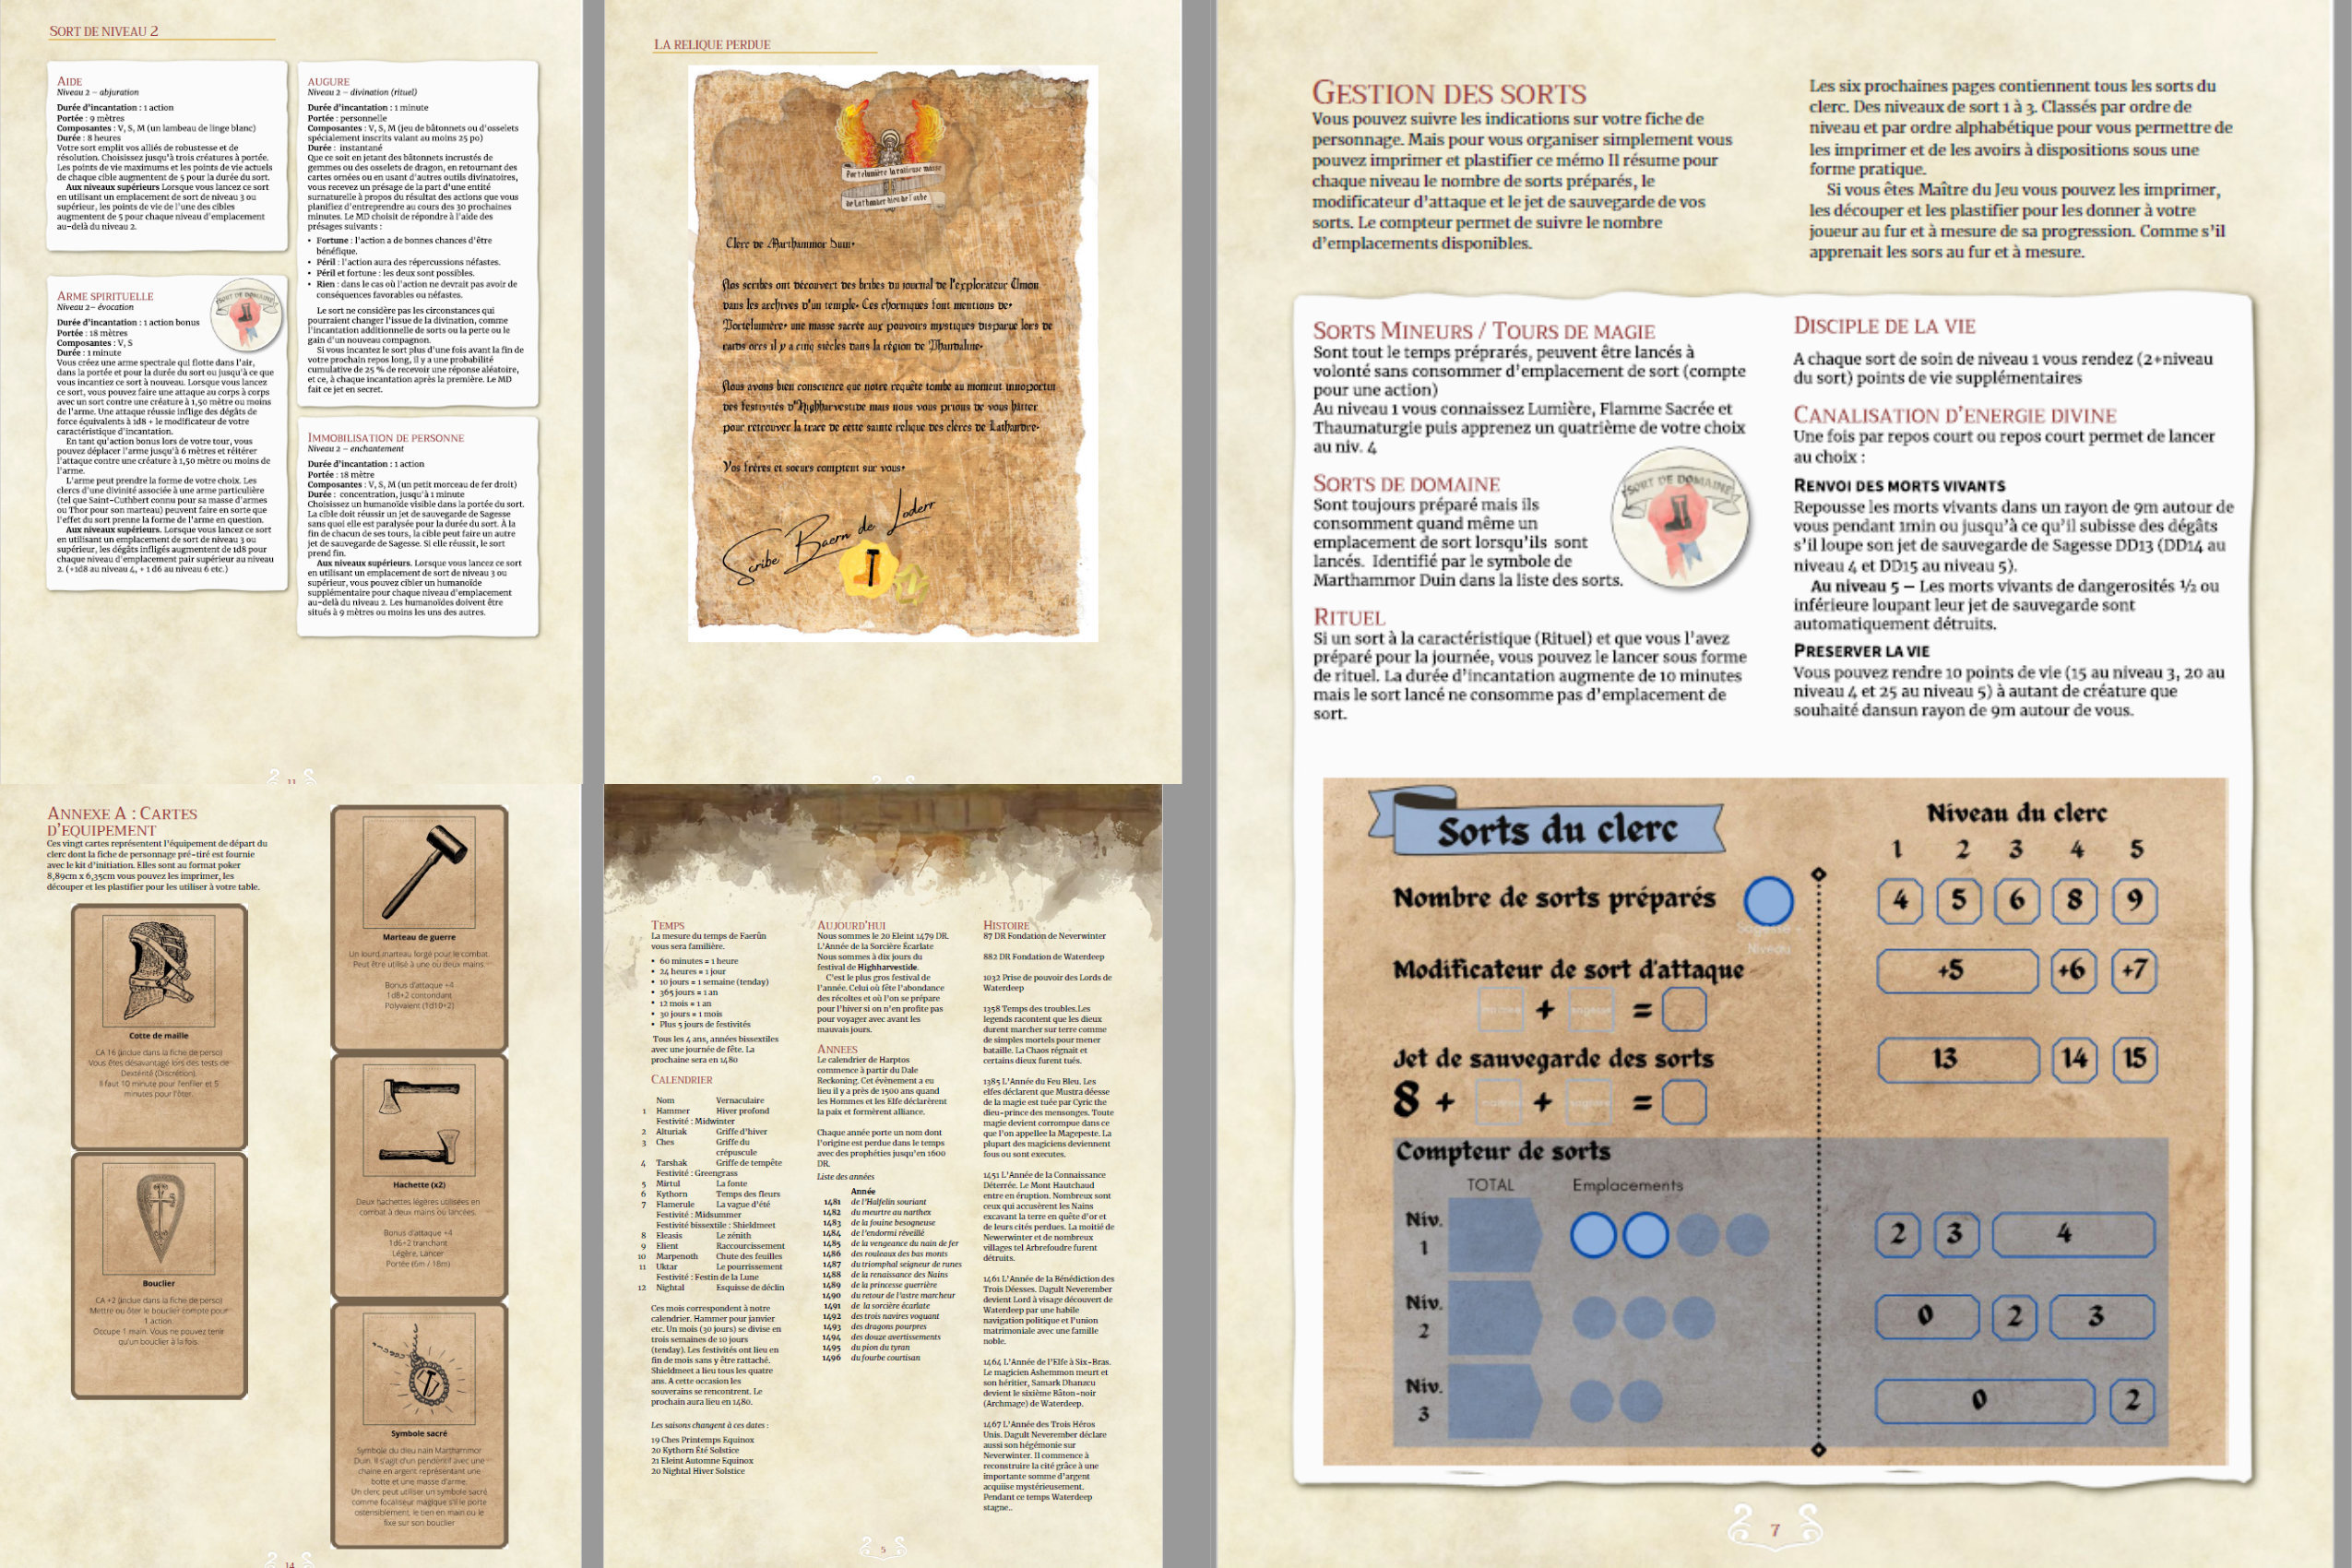 Samples of the contents within the PDF